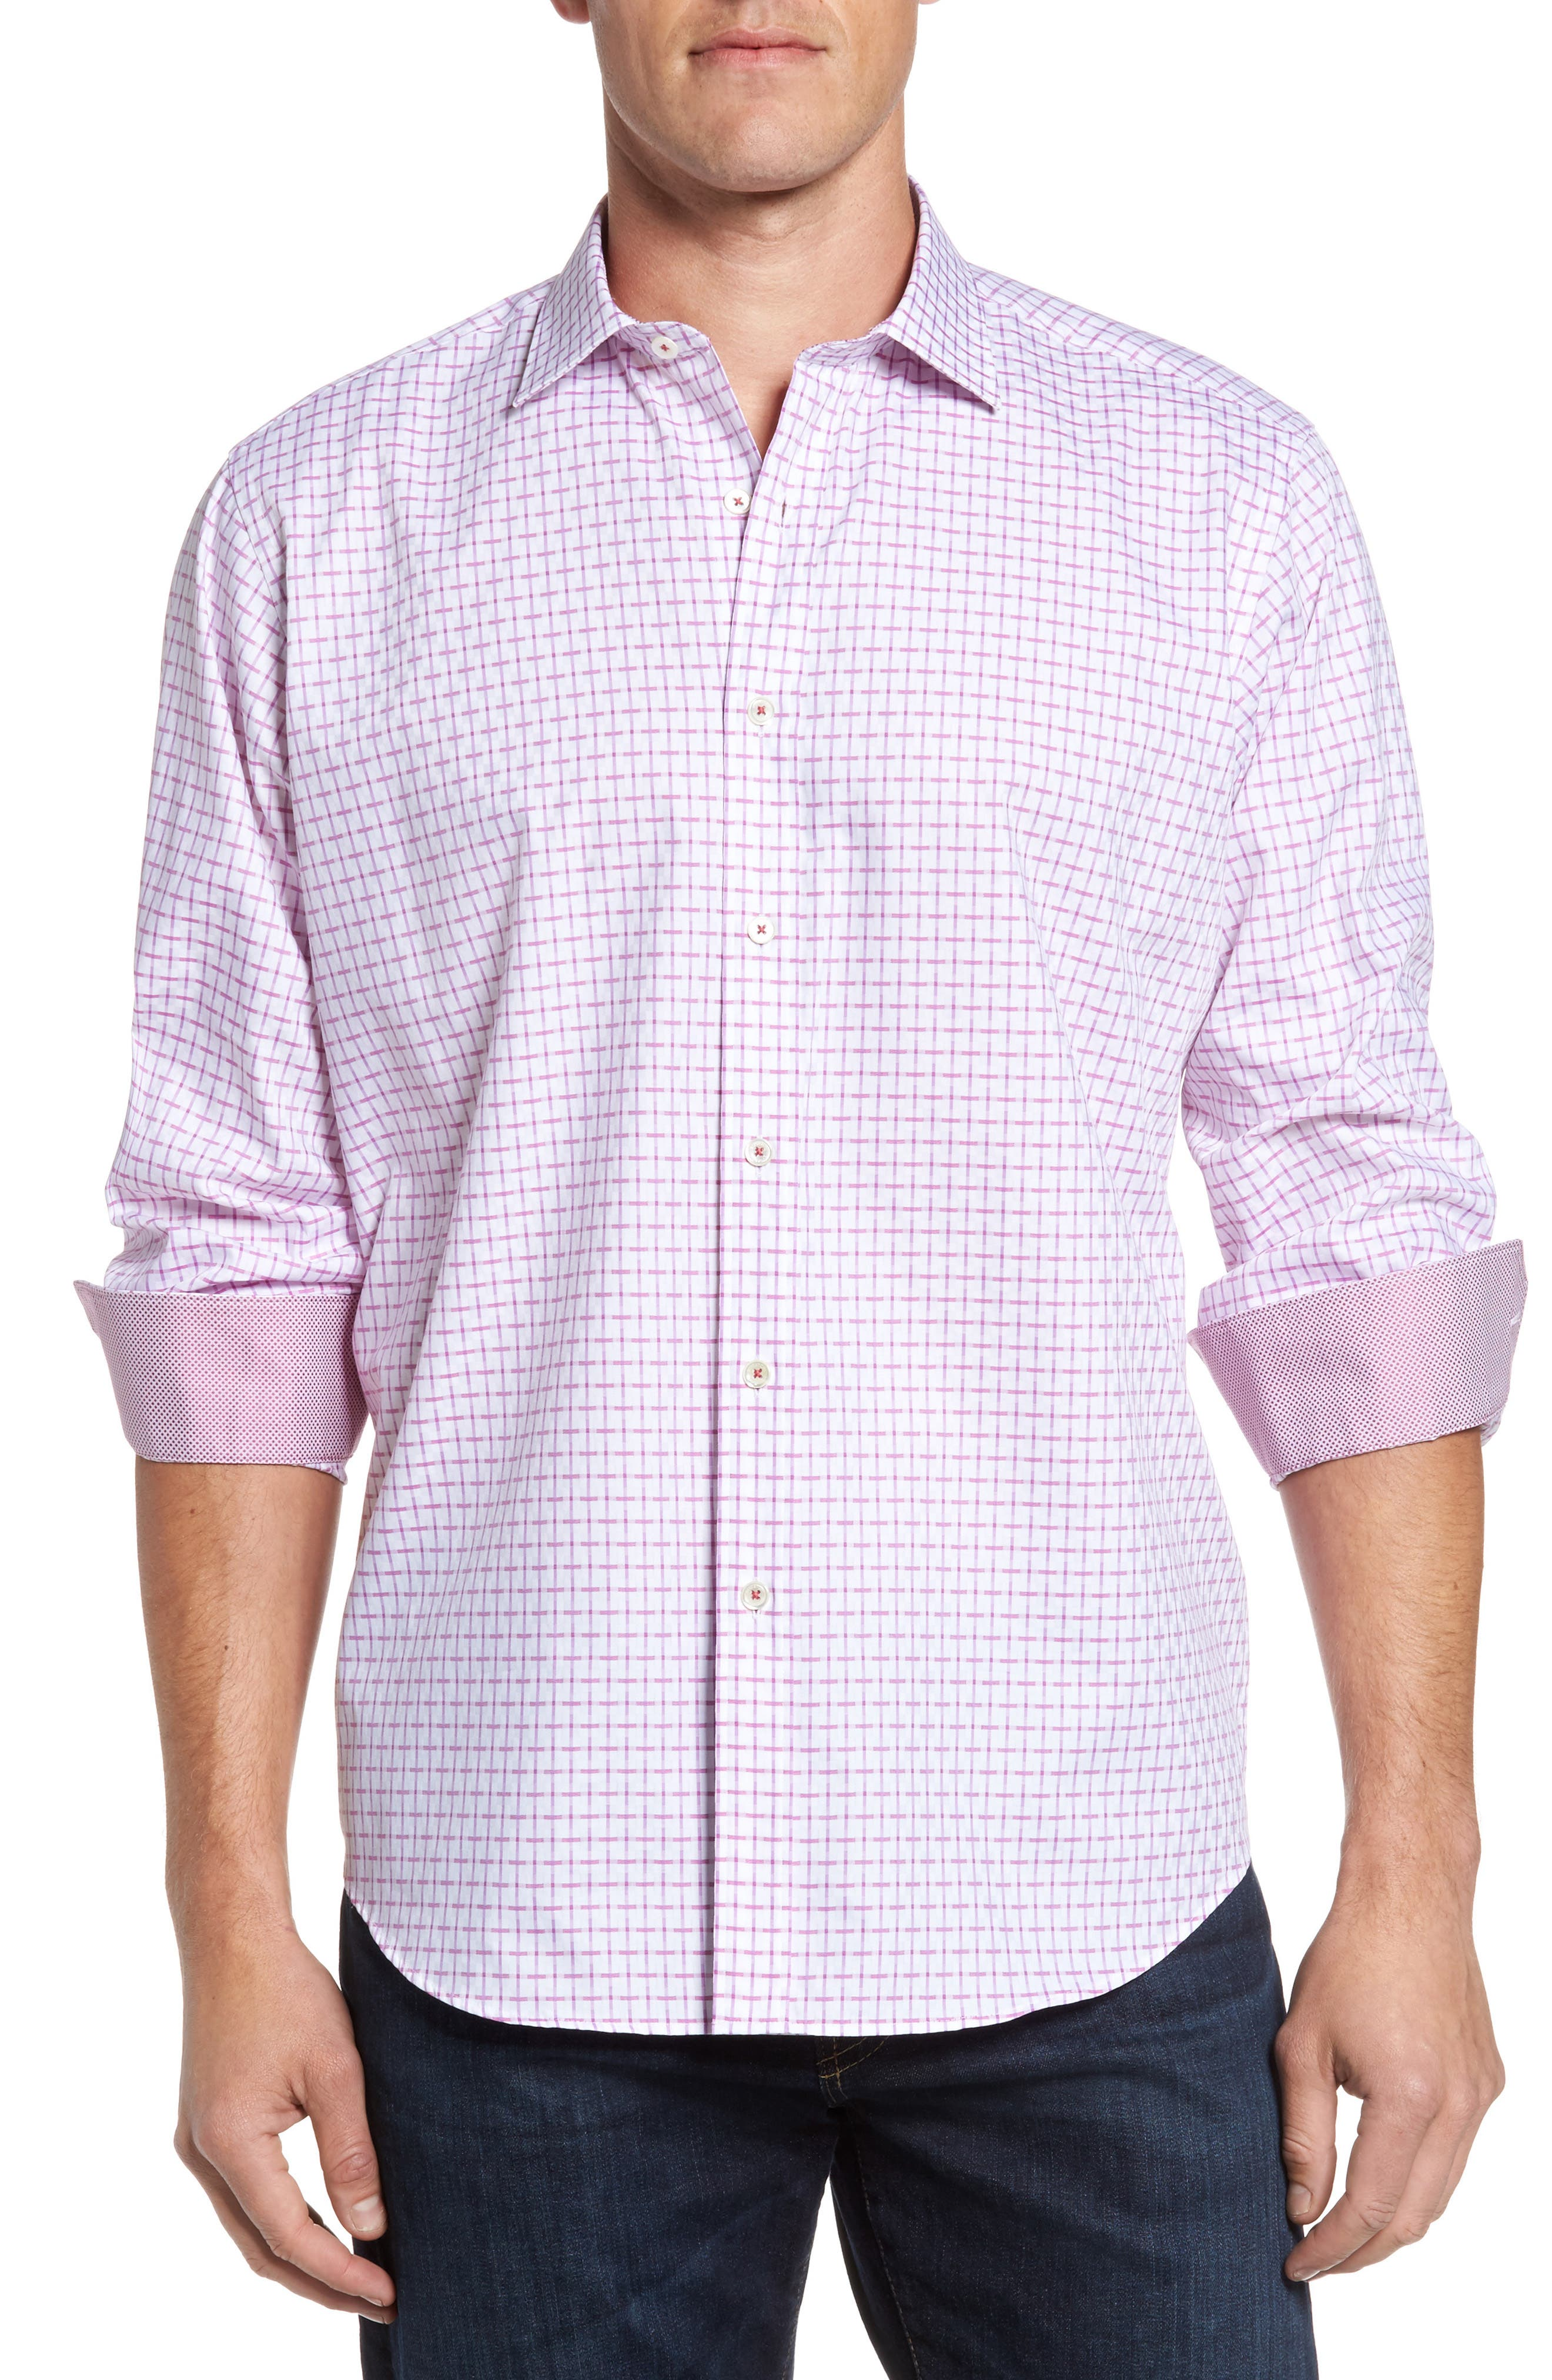 Alternate Image 1 Selected - Bugatchi Classic Fit Graphic Sport Shirt